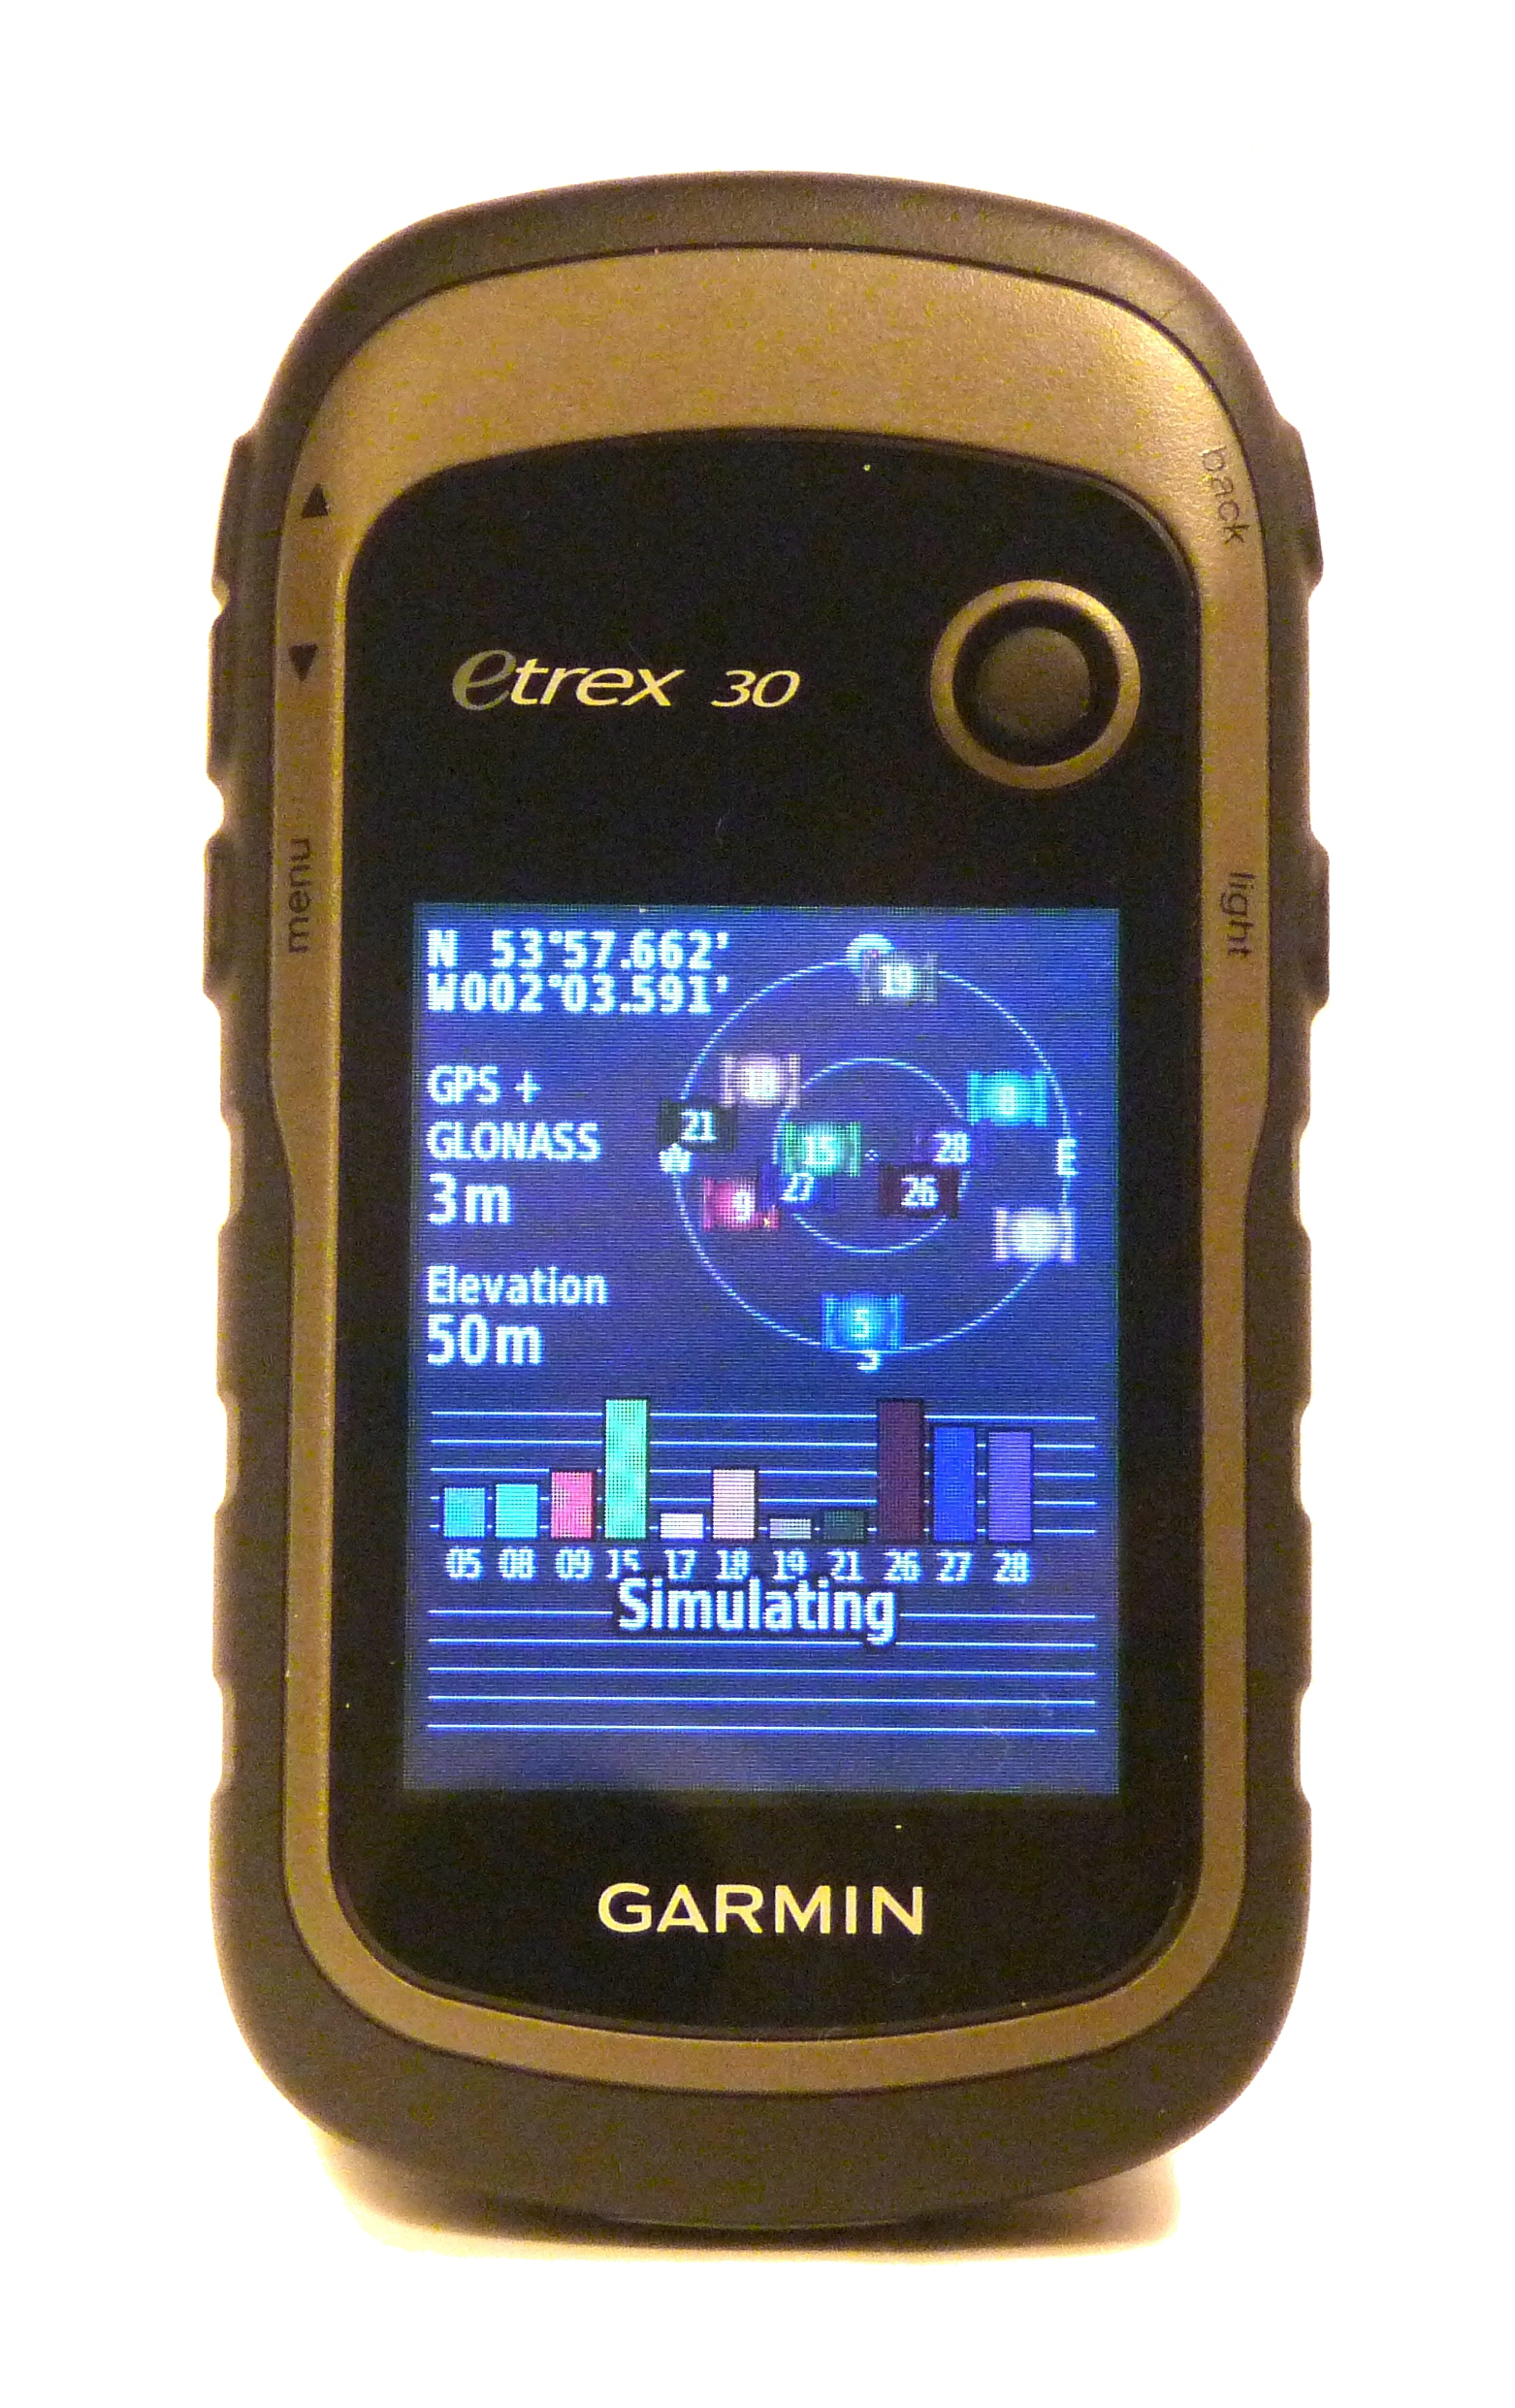 Handheld GPS Market Overview | Trends and Regional Outlook Study 2018 – 2023